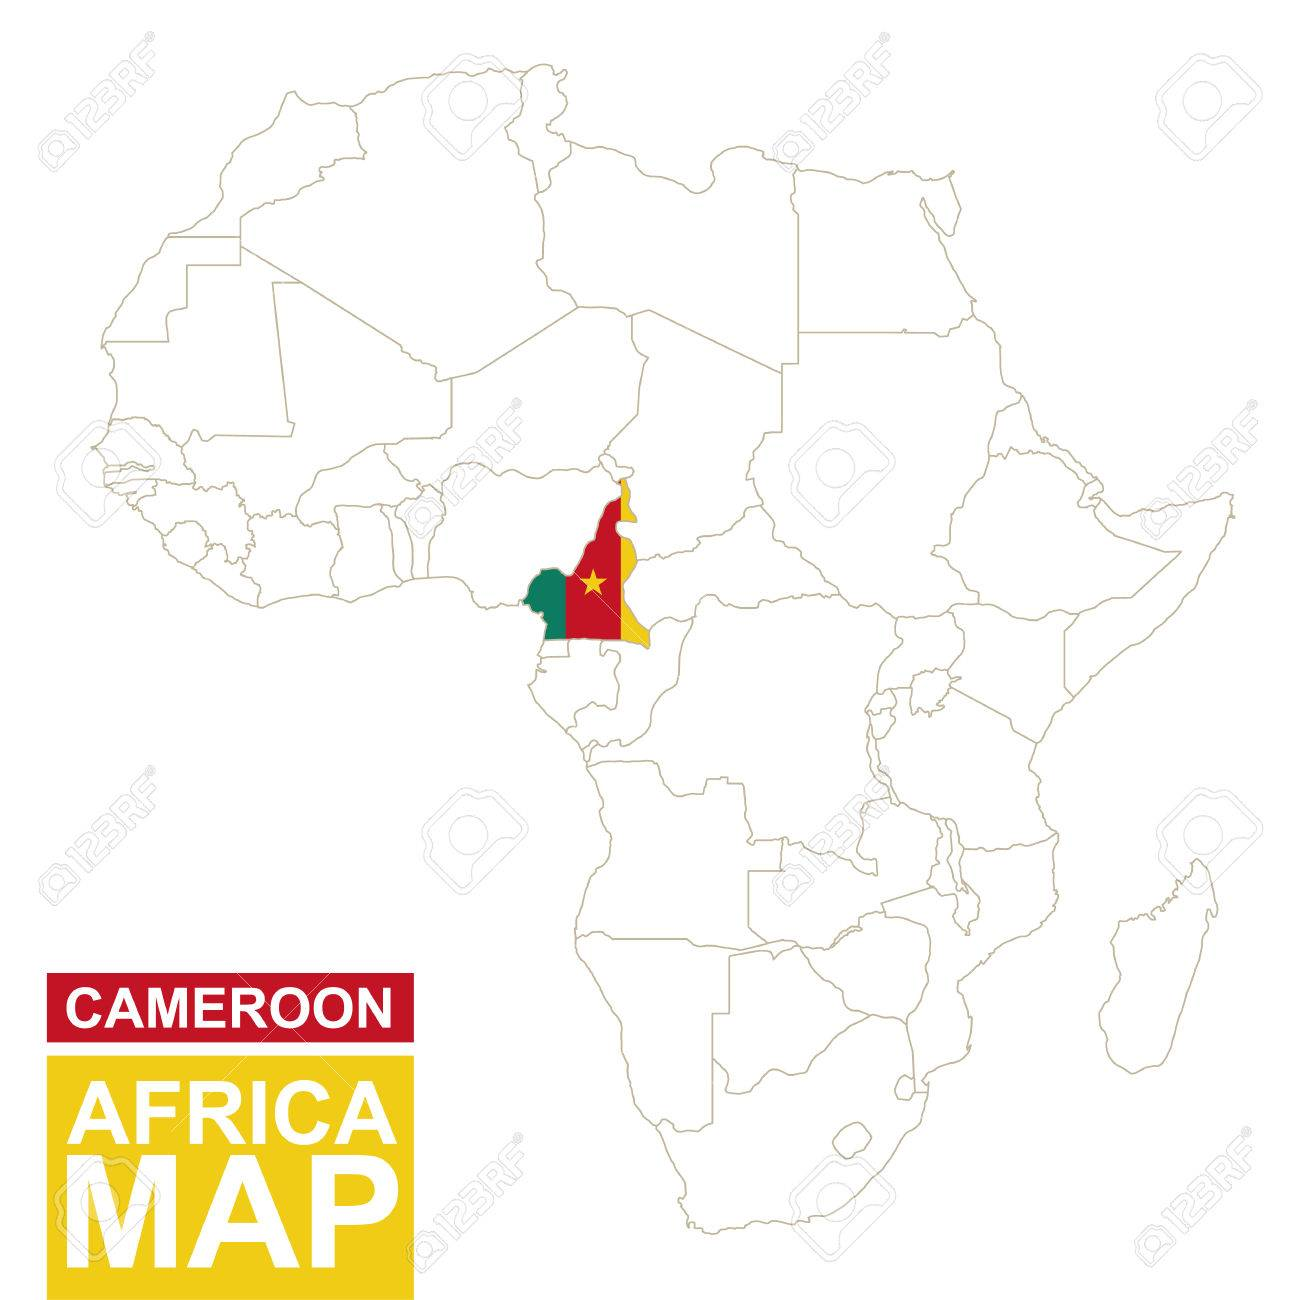 Africa contoured map with highlighted cameroon cameroon map africa contoured map with highlighted cameroon cameroon map and flag on africa map vector ccuart Image collections